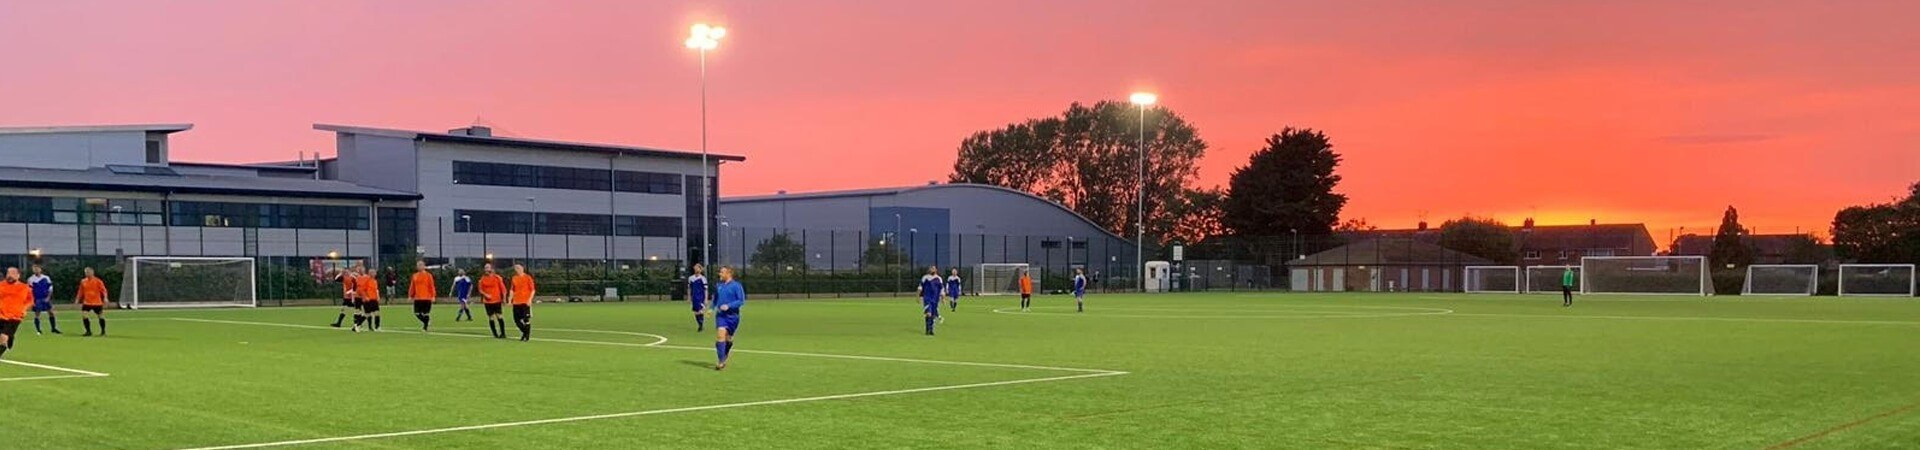 Football match at Queens drive 3G pitch